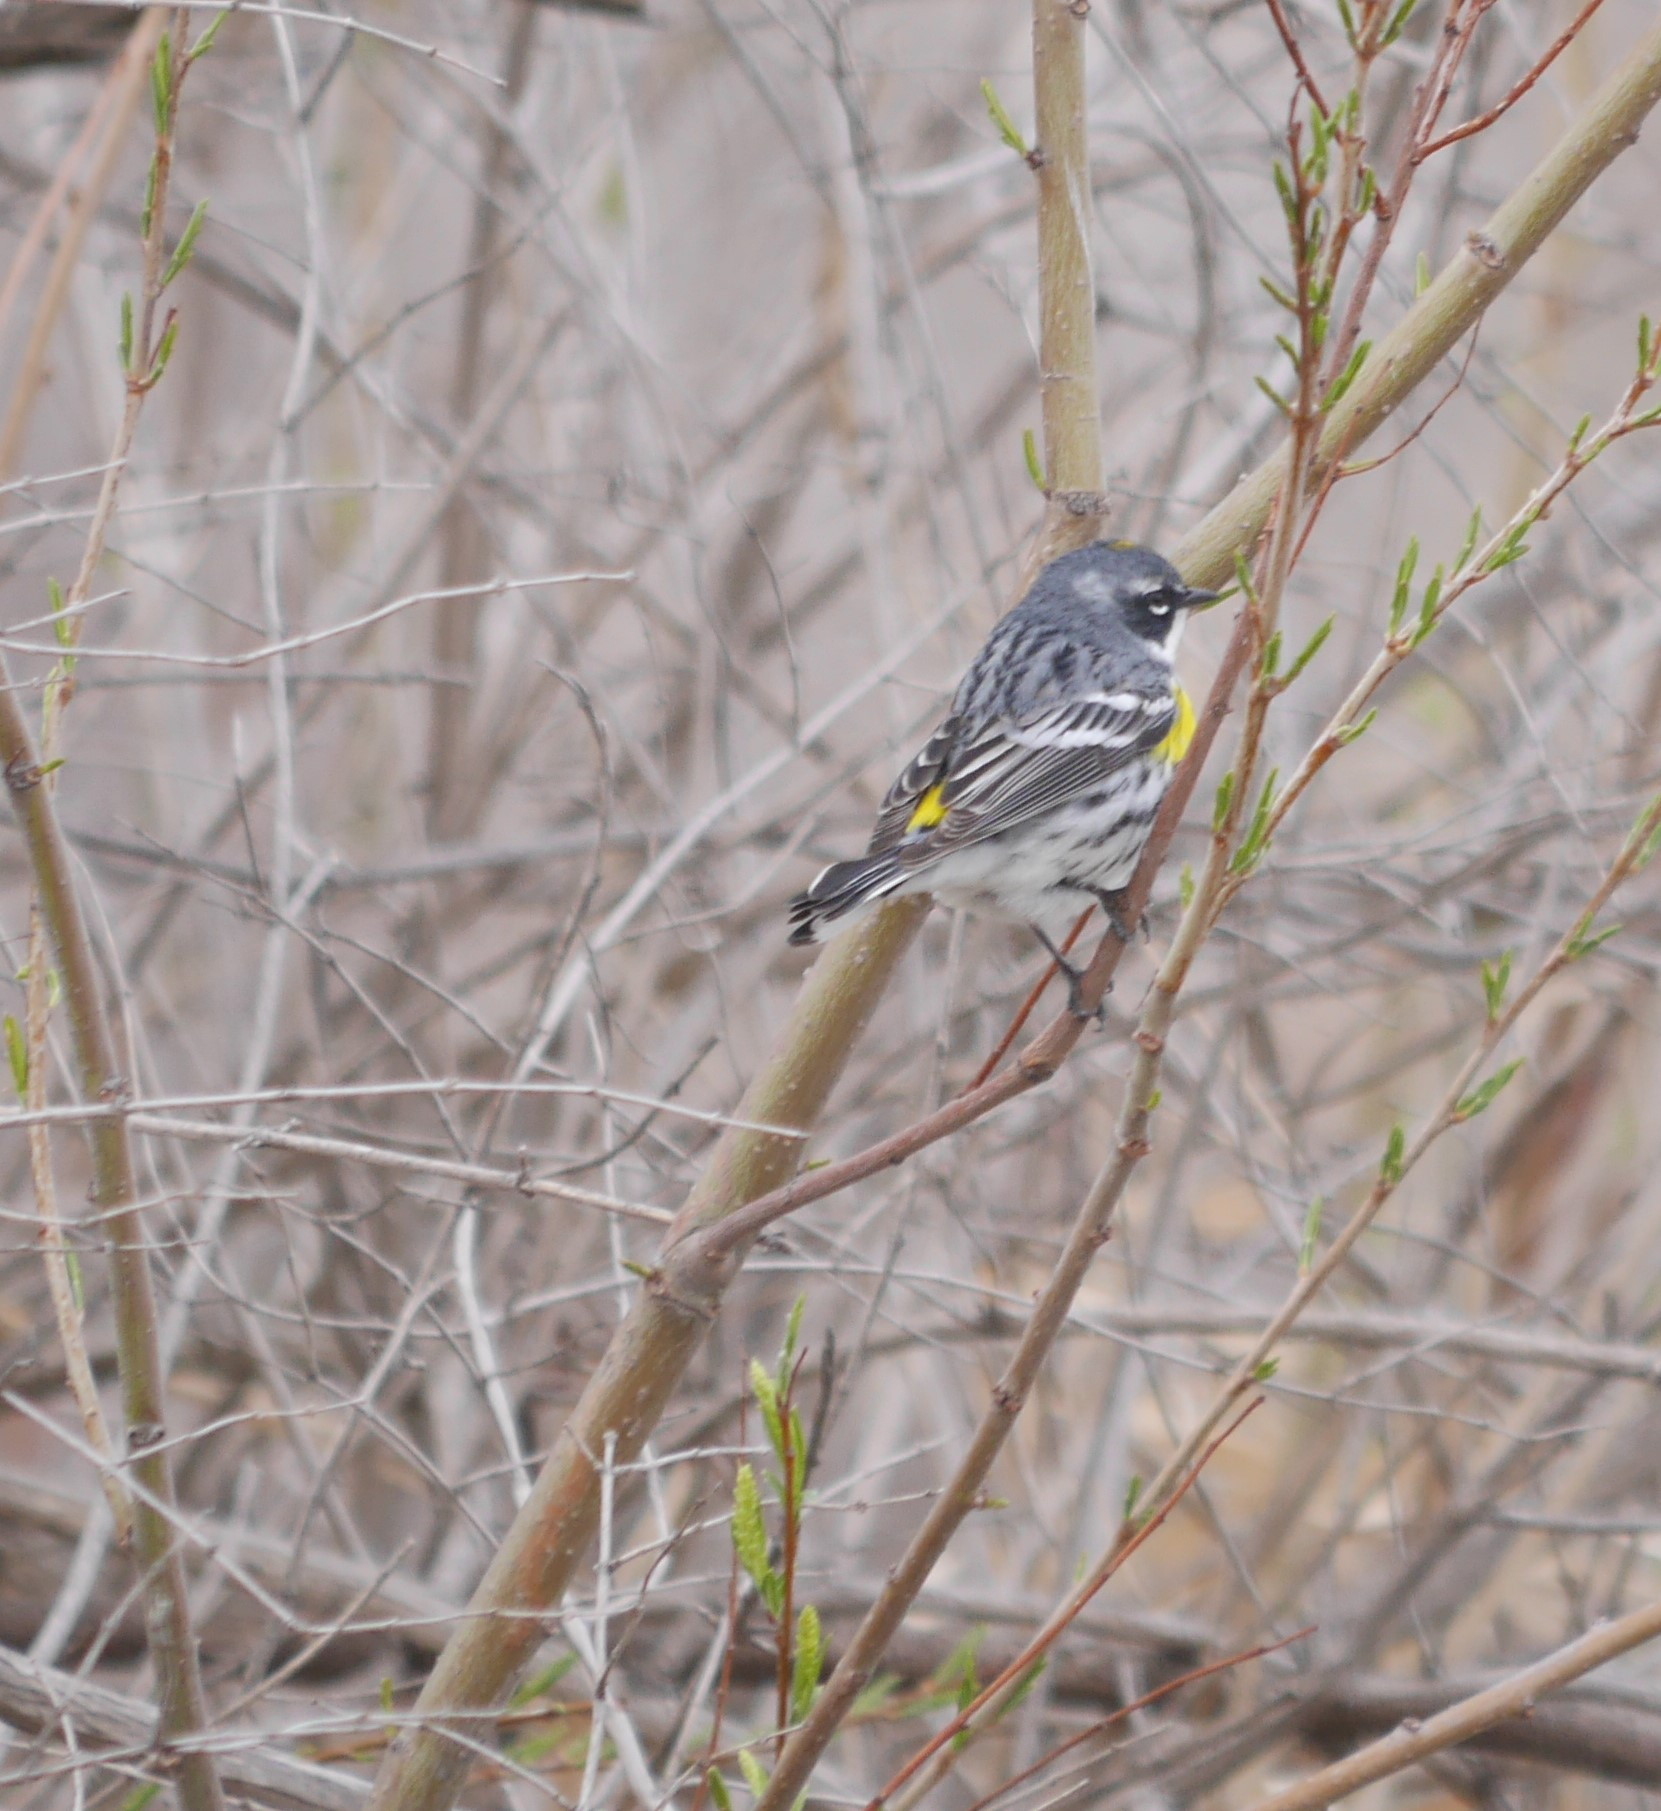 Yellow-rumped Warbler photo by Cindy Dobrez